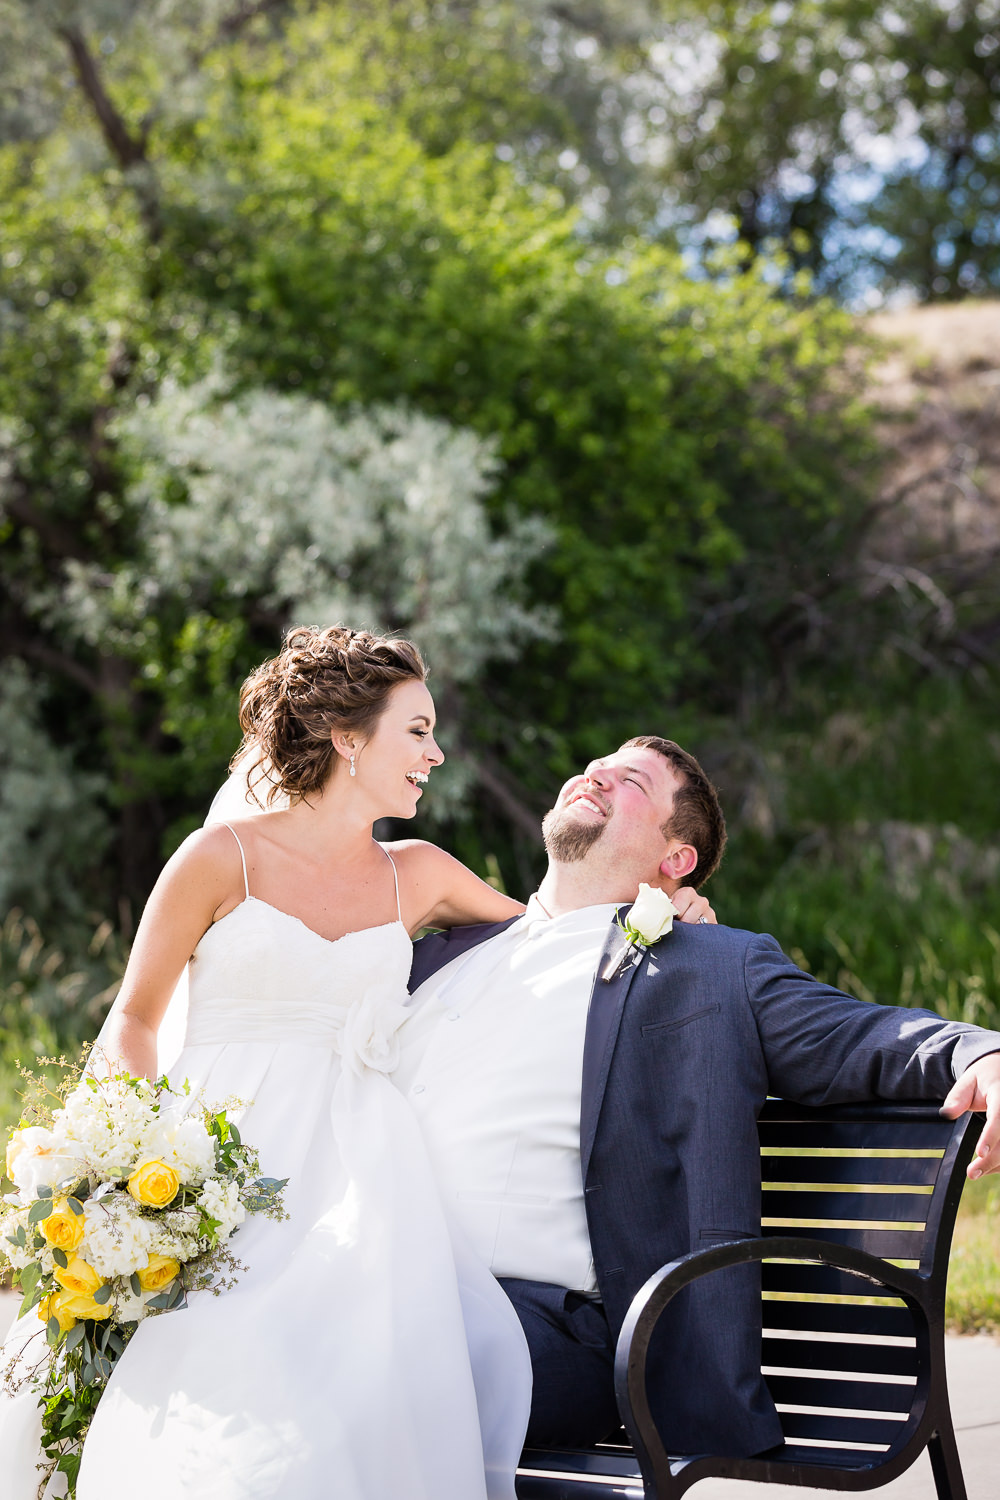 billings-montana-swift-river-ranch-wedding-reception-couple-laughing-on-bench.jpg